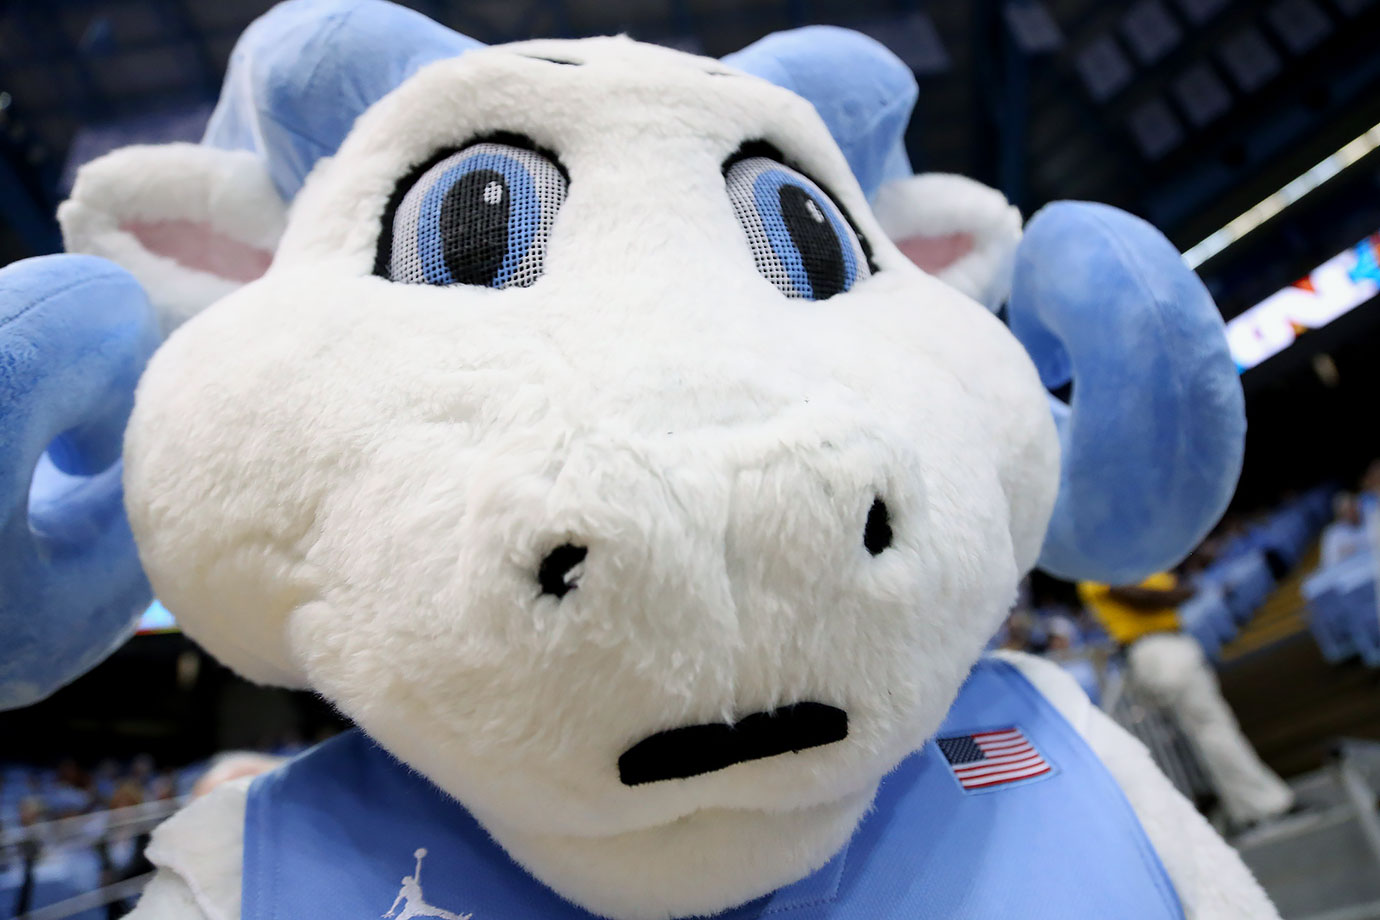 Less than a month after his debut, North Carolina mascot Ramses Jr. has already managed to grow a mustache.